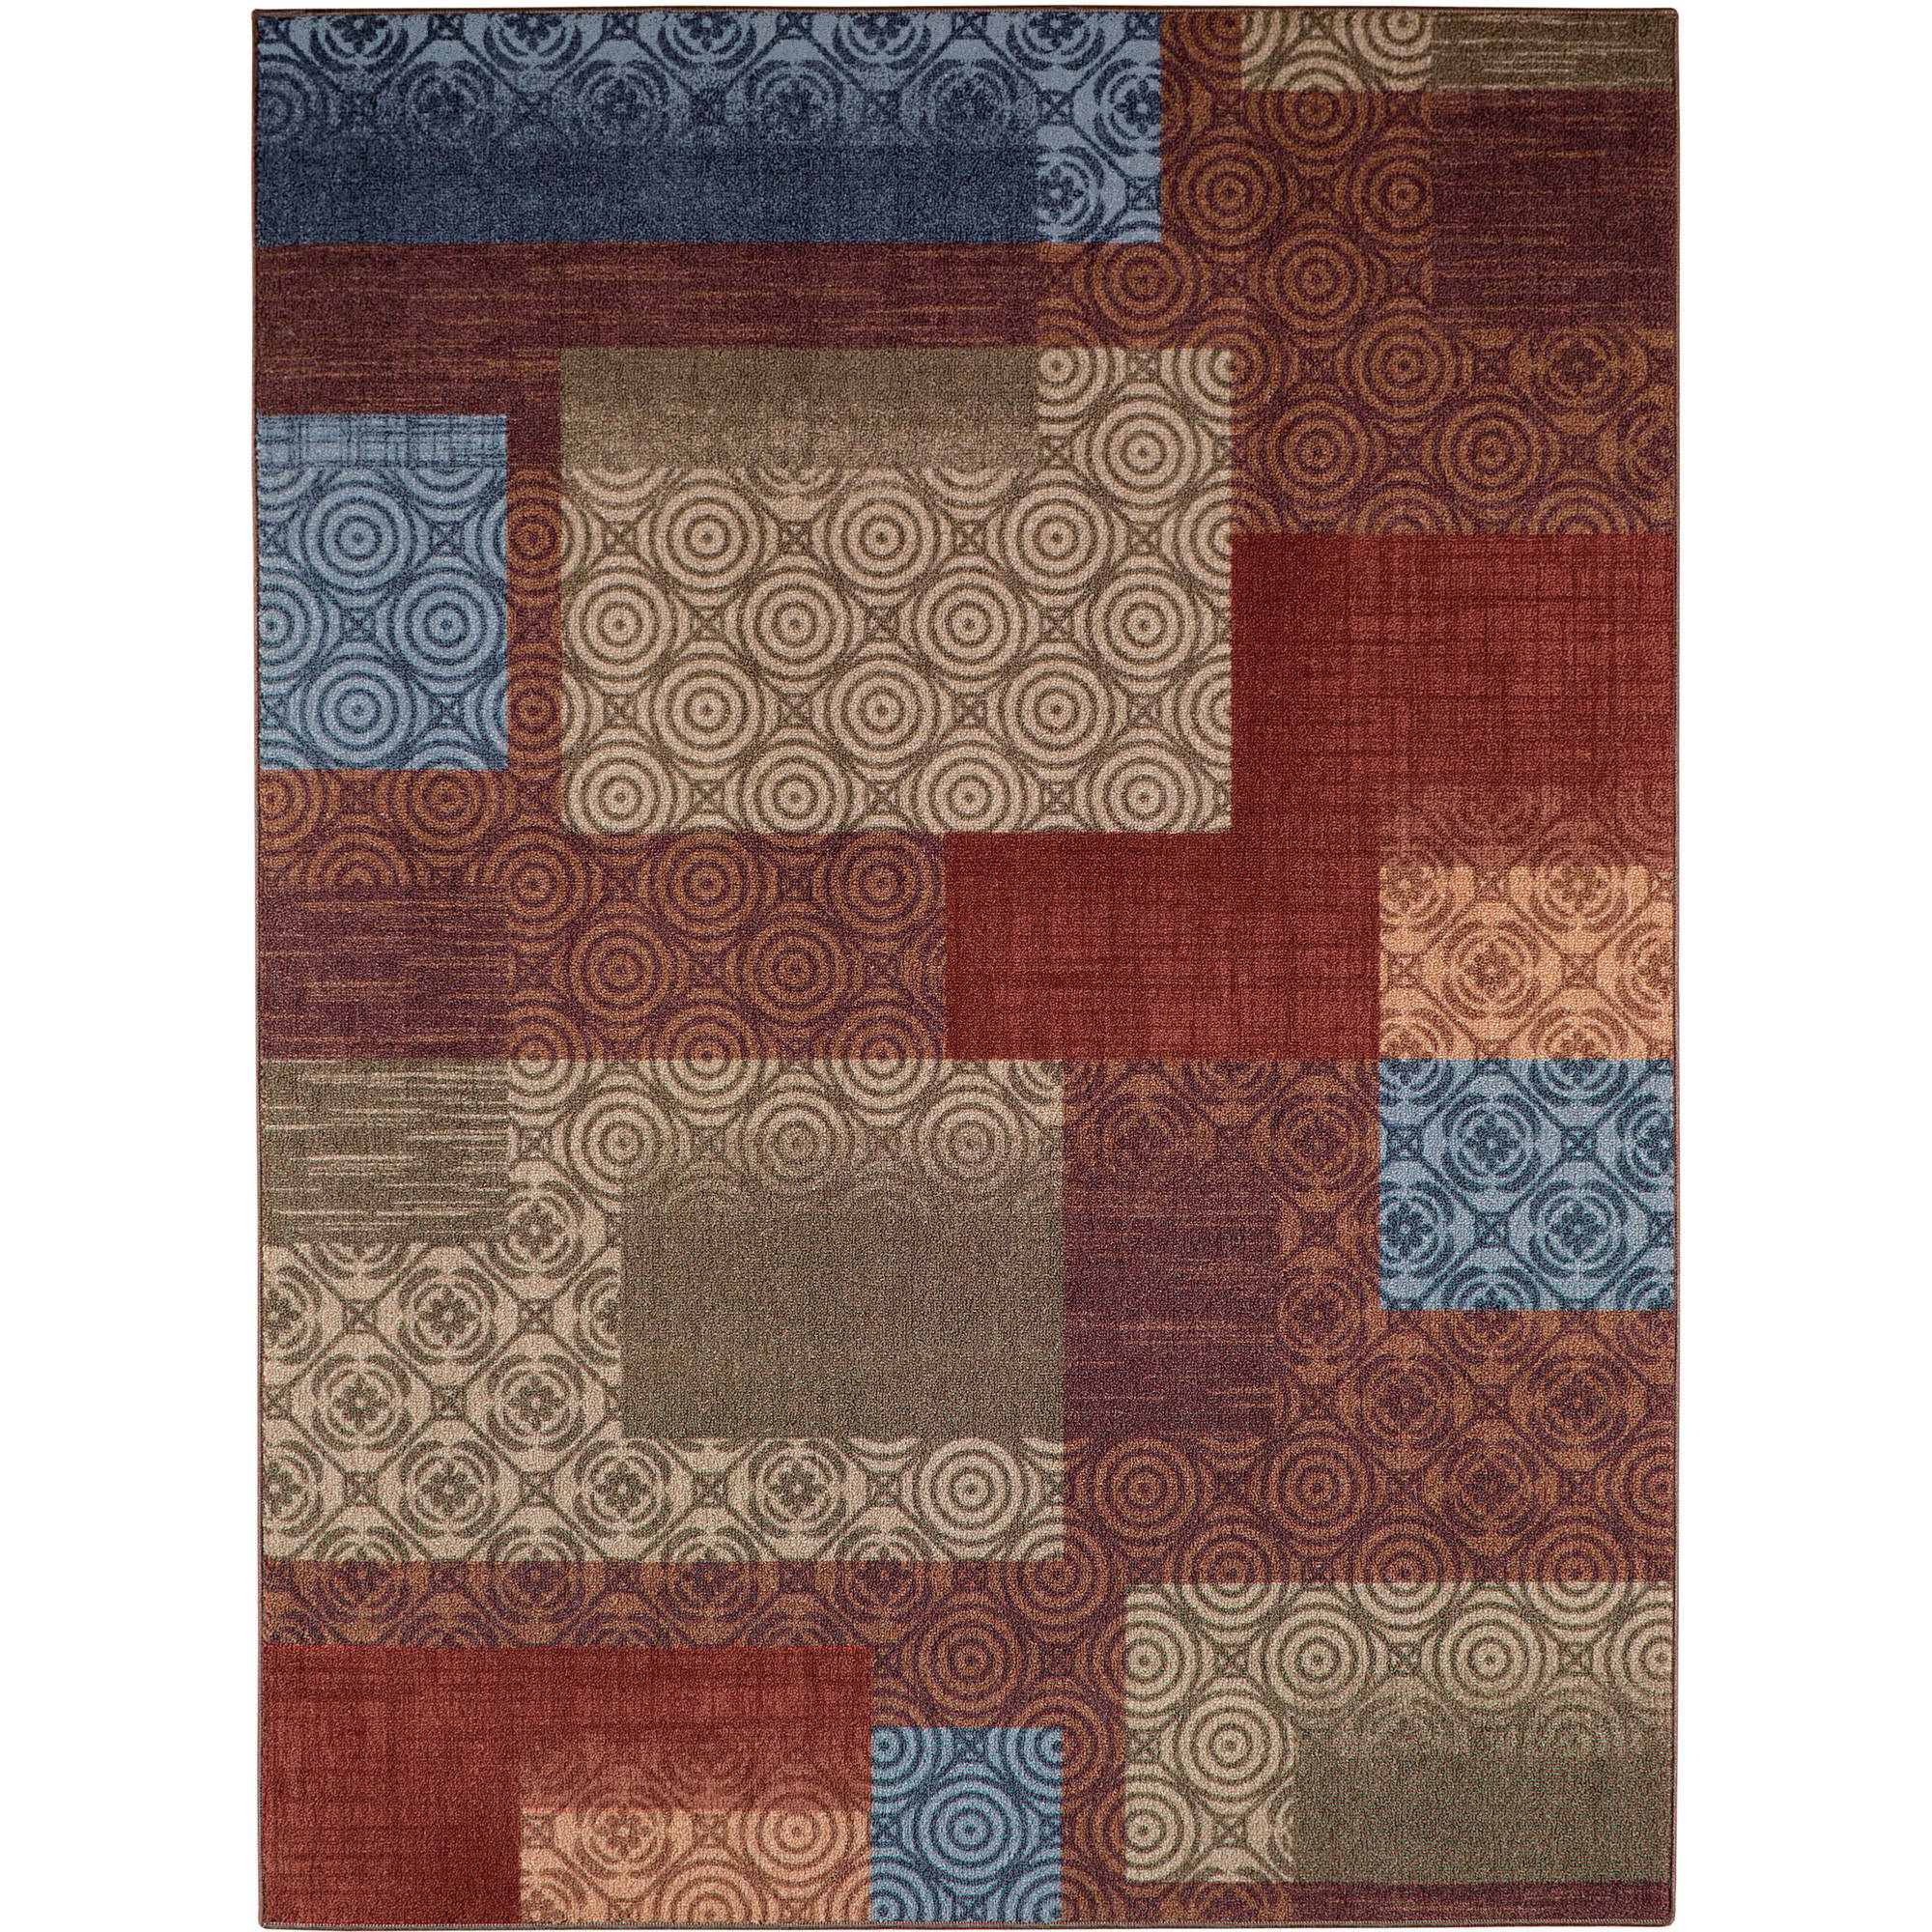 Mainstays Payton Nylon Area Rugs or Runner